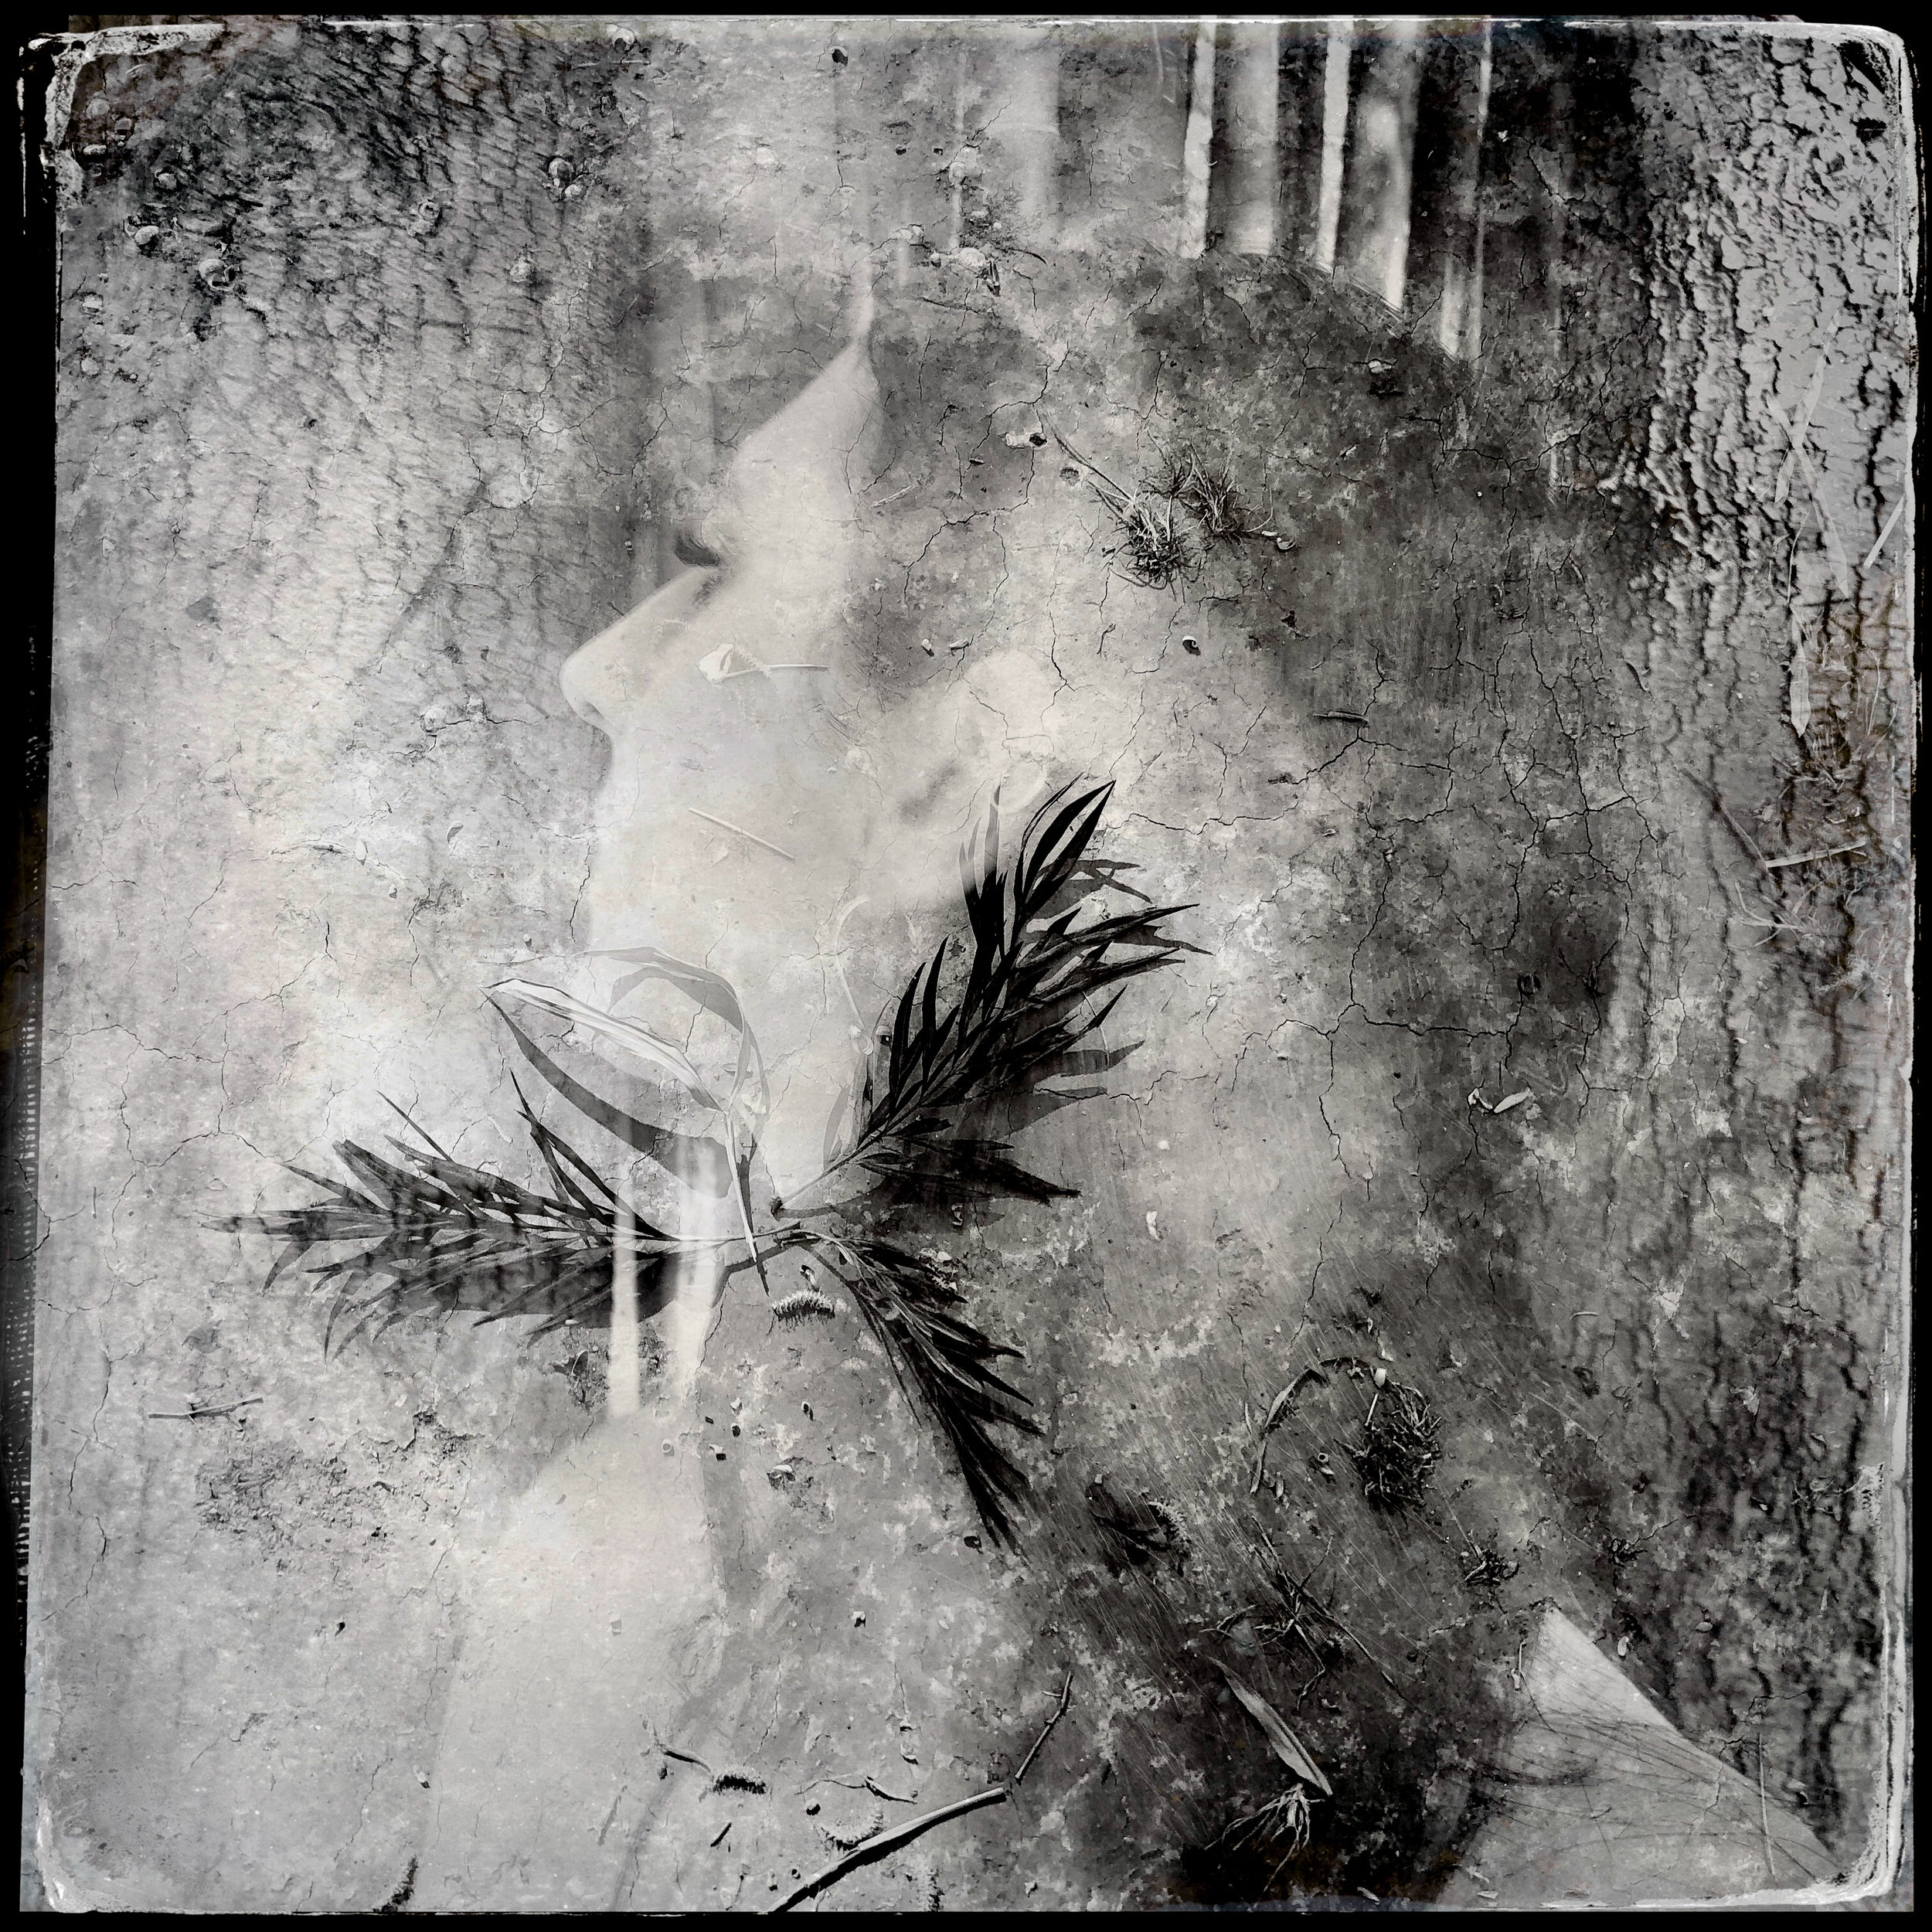 My Seer Over Heavens Above │ finding visions of phoenix flight with found leaves and dust, layered with light │Yunnan, China